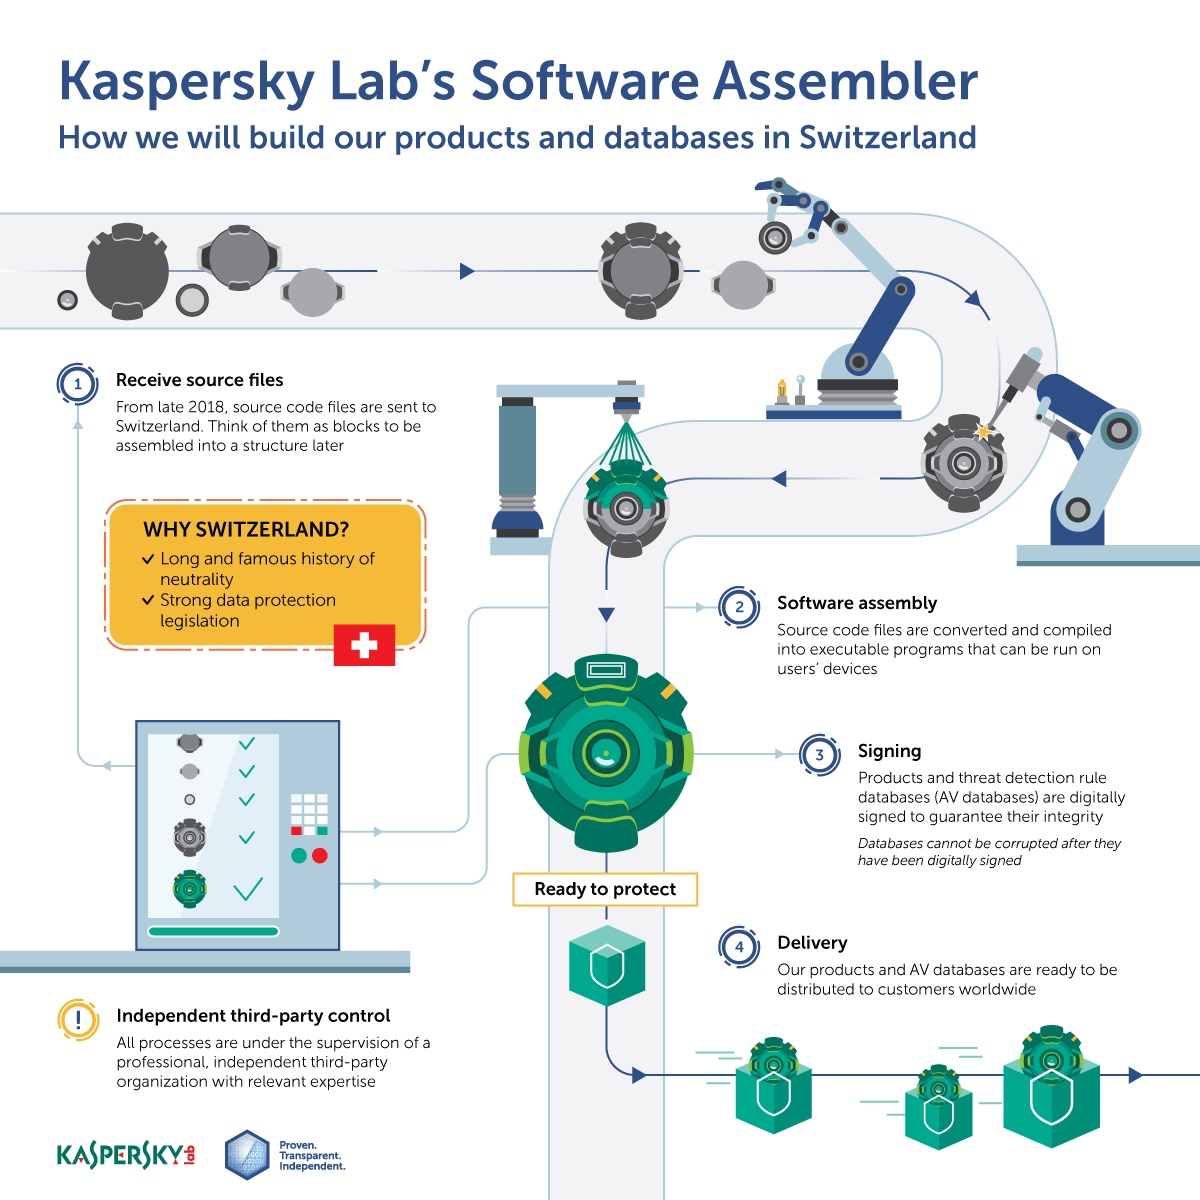 Kaspersky Lab moving core infrastructure from Russia to Switzerland; opening first Transparency Center